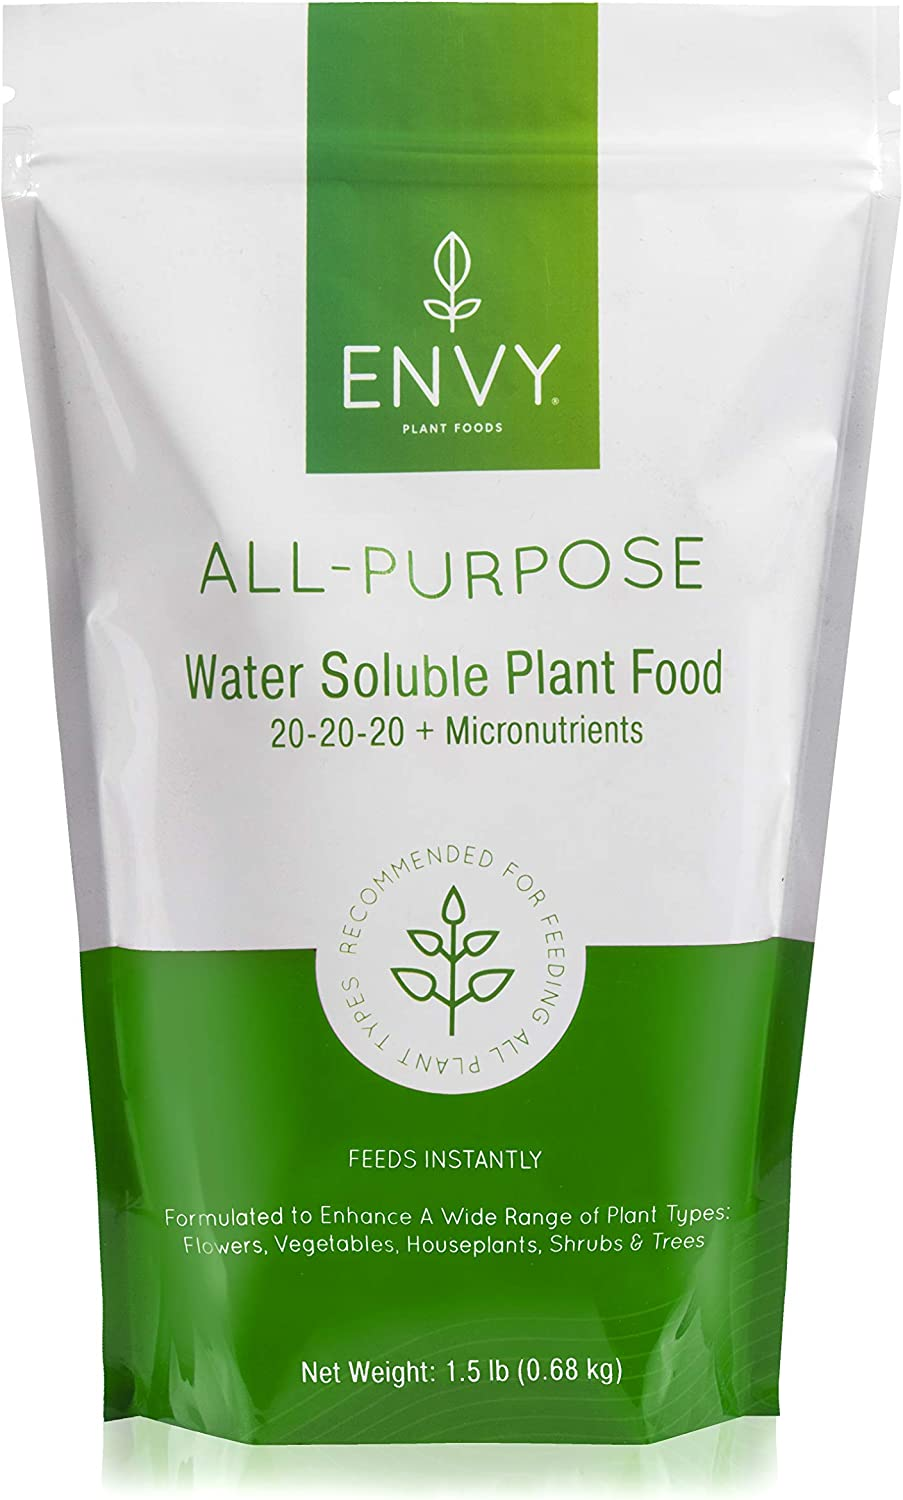 ENVY Professional Grade All-Purpose Plant Food (20-20-20) 100% Water Soluble - in Resealable Pouch W/Measuring Scoop (1.5 lb)